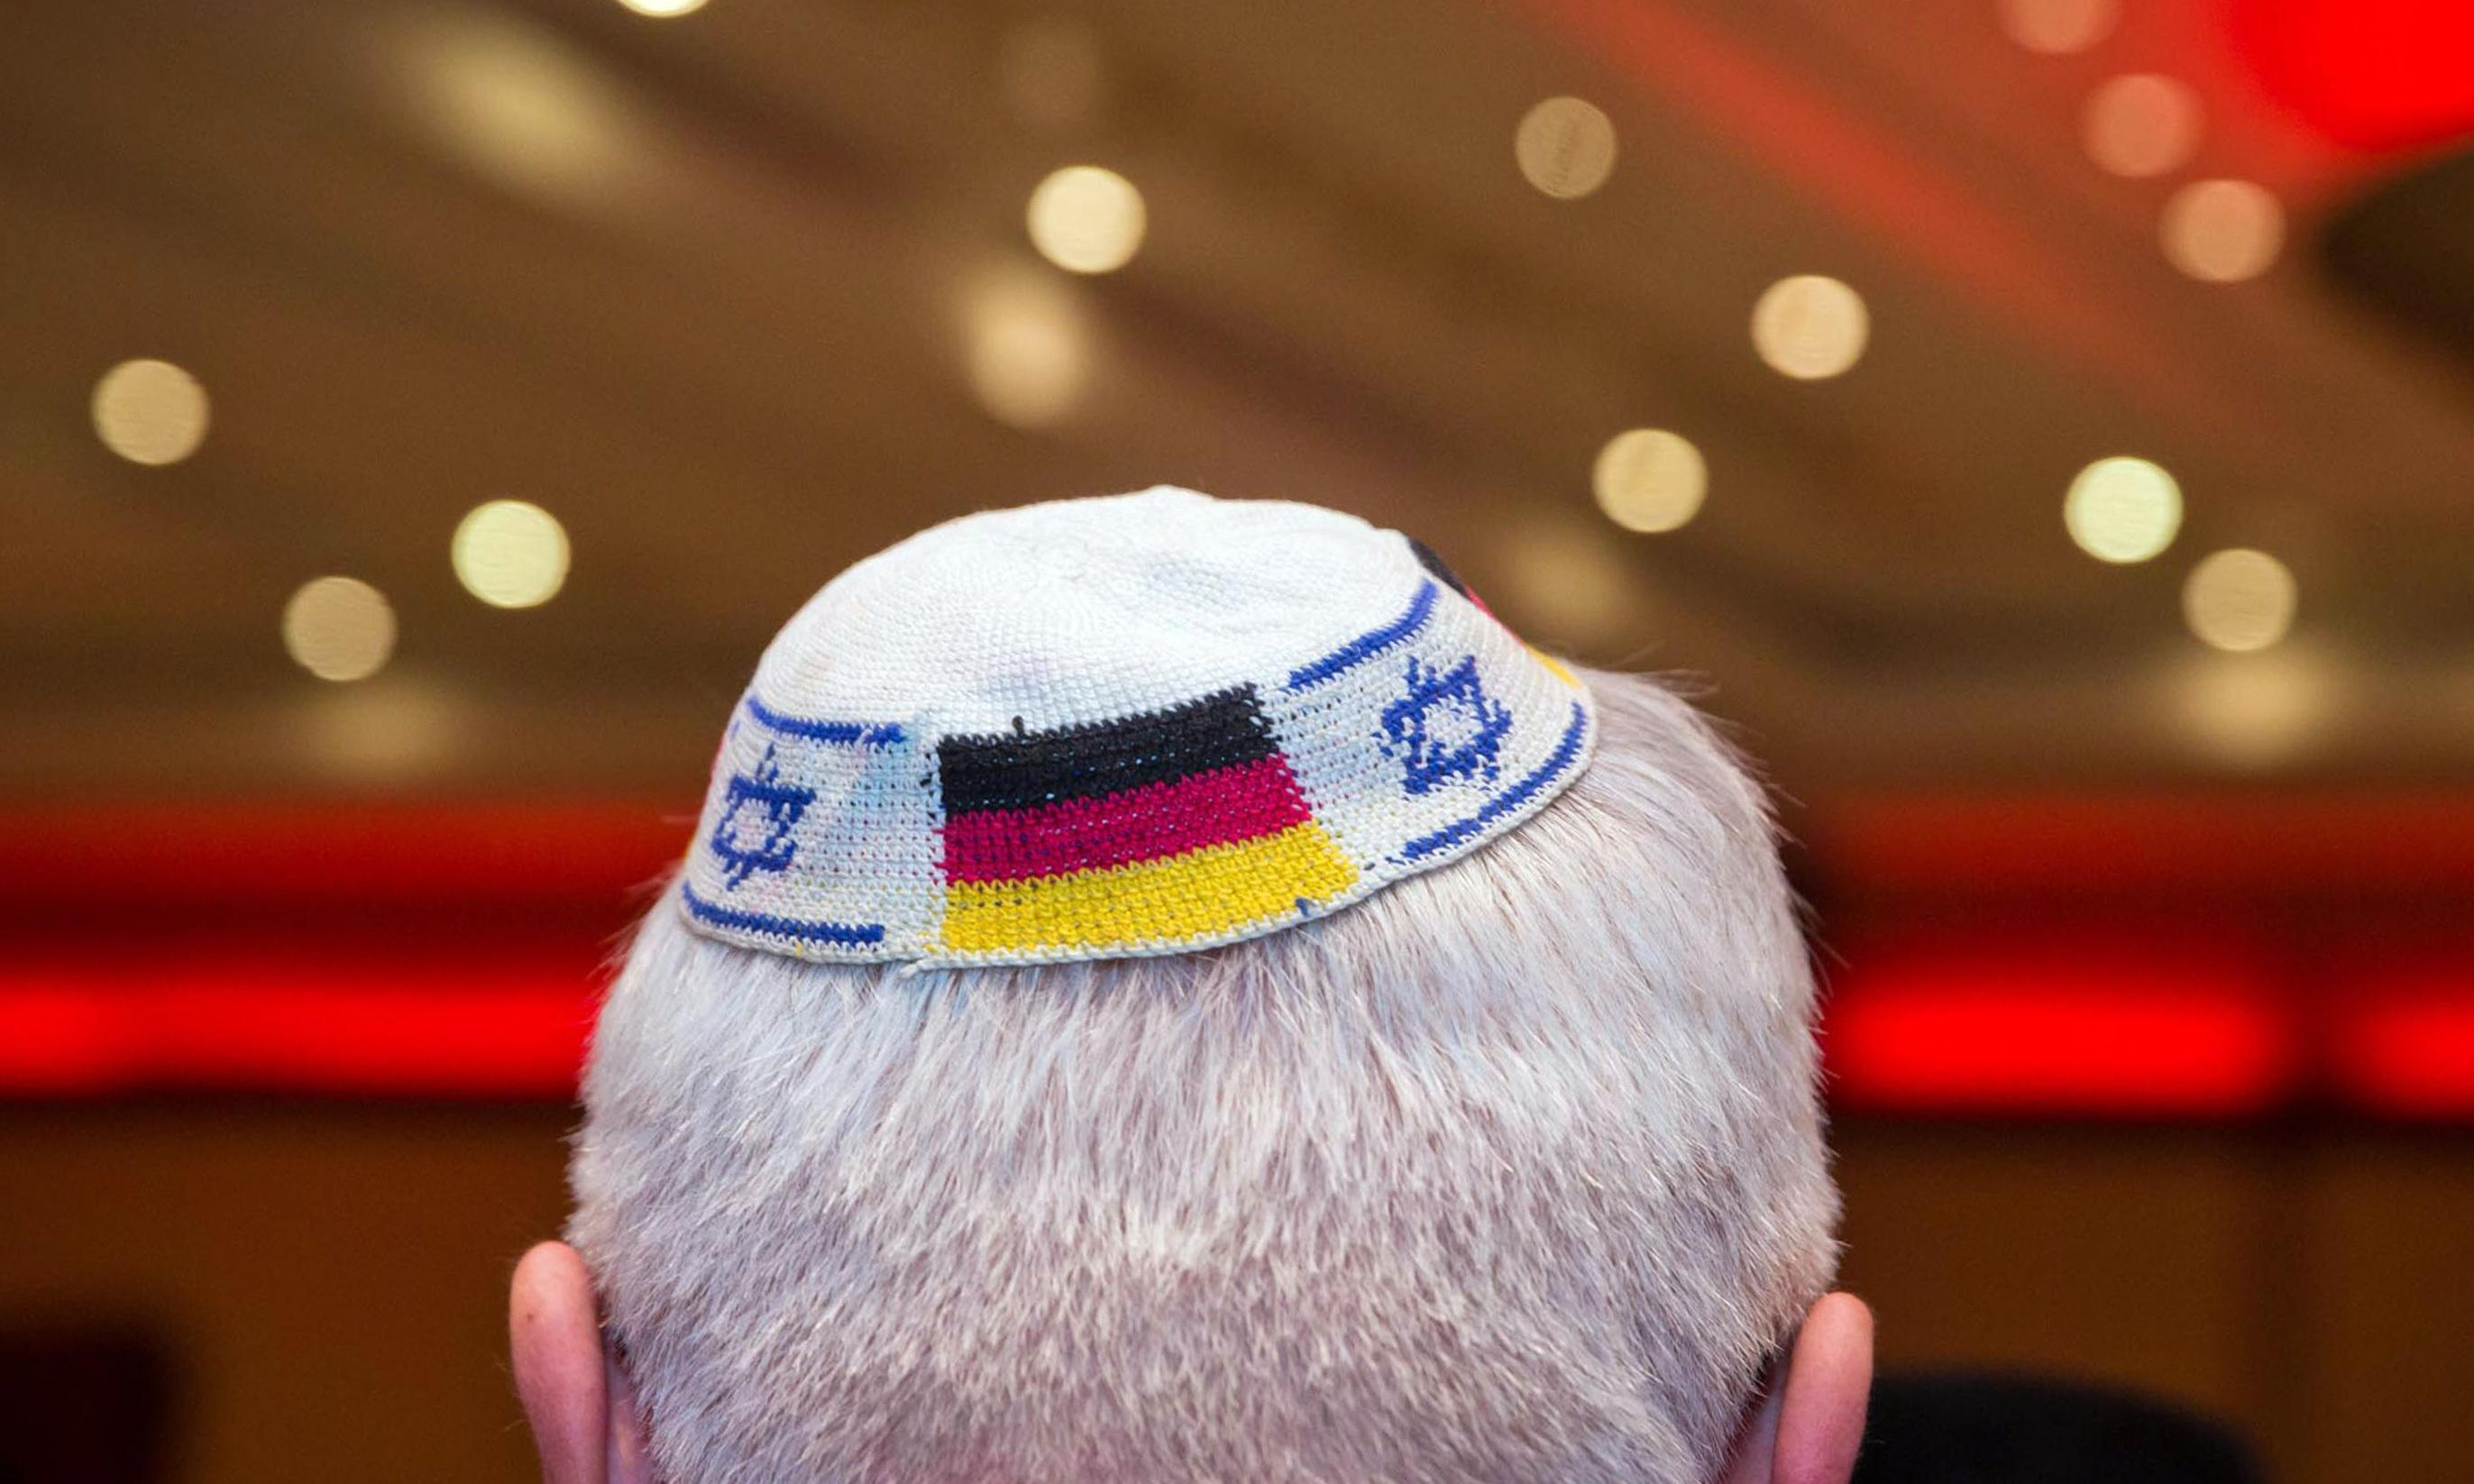 Jews in Germany warned of risks of wearing kippah cap in public